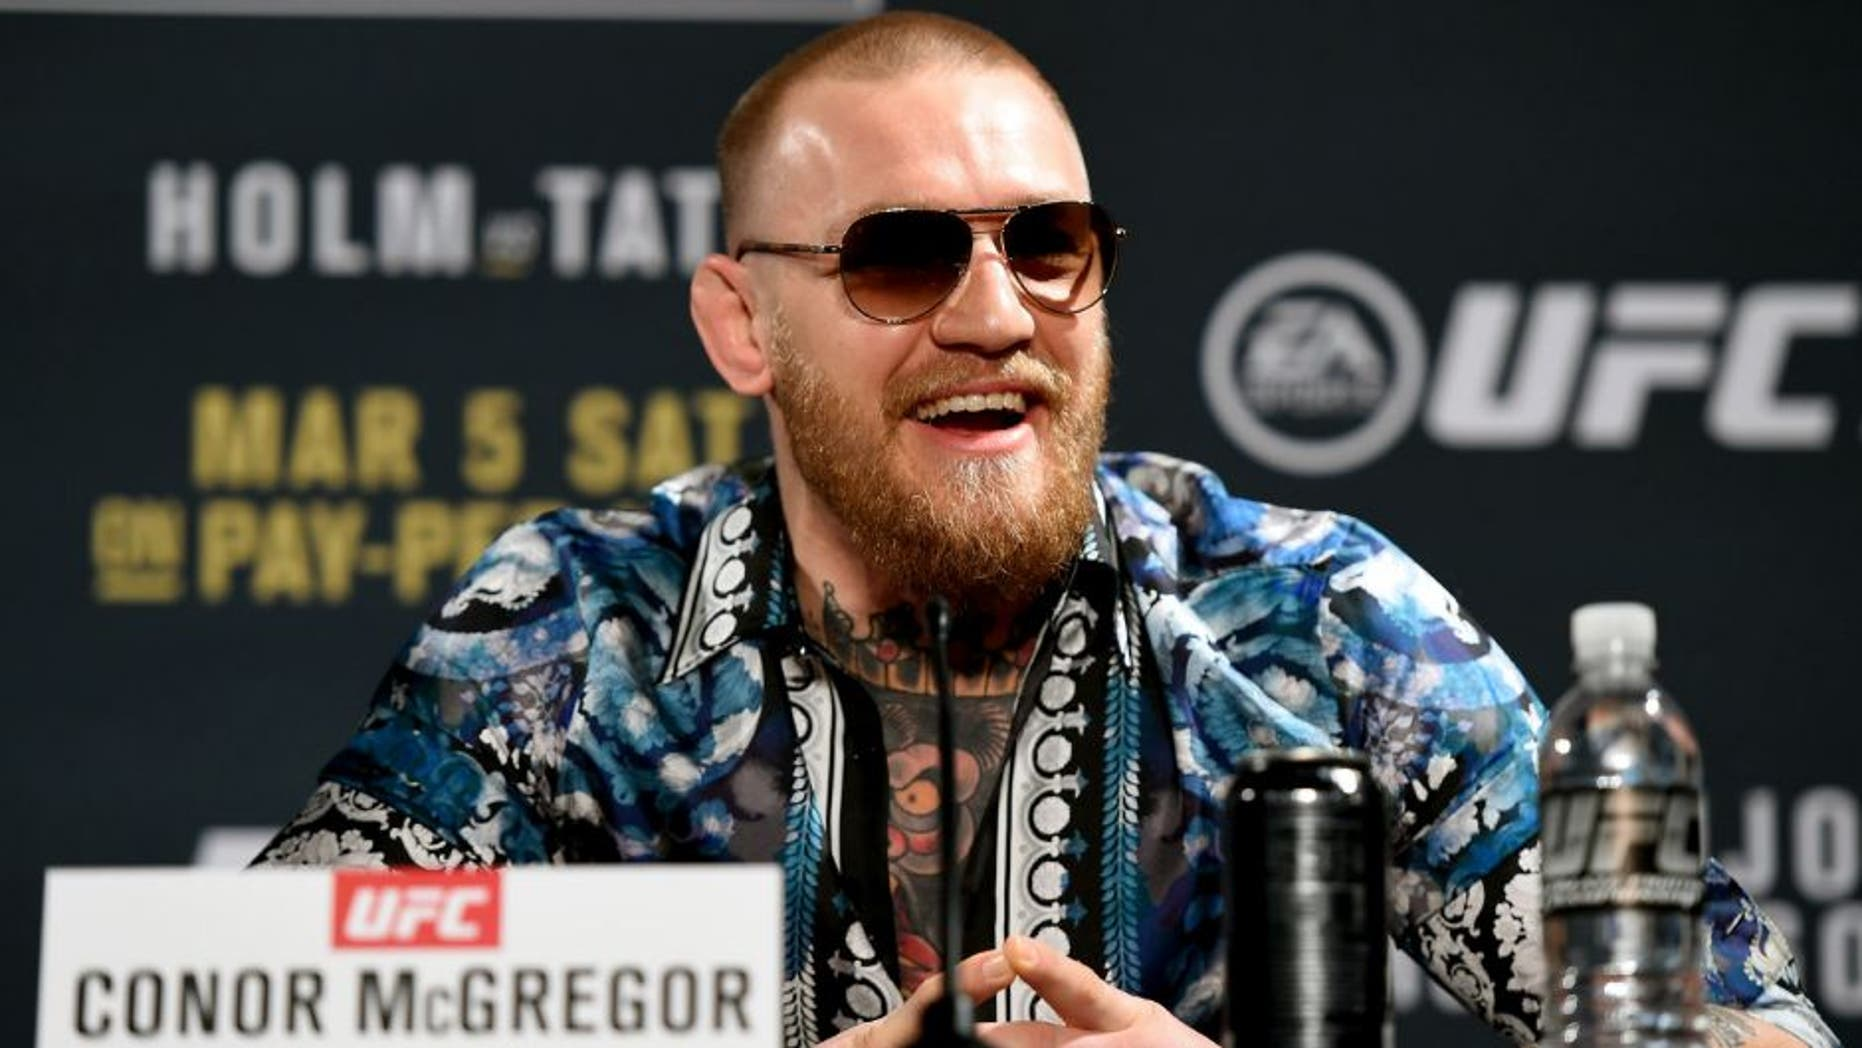 LAS VEGAS, NV - JANUARY 20: Conor McGregor of Ireland answers questions from the media during the UFC 197 on-sale press conference event inside MGM Grand Hotel & Casino on January 20, 2016 in Las Vegas, Nevada. (Photo by Jeff Bottari/Zuffa LLC/Zuffa LLC via Getty Images)